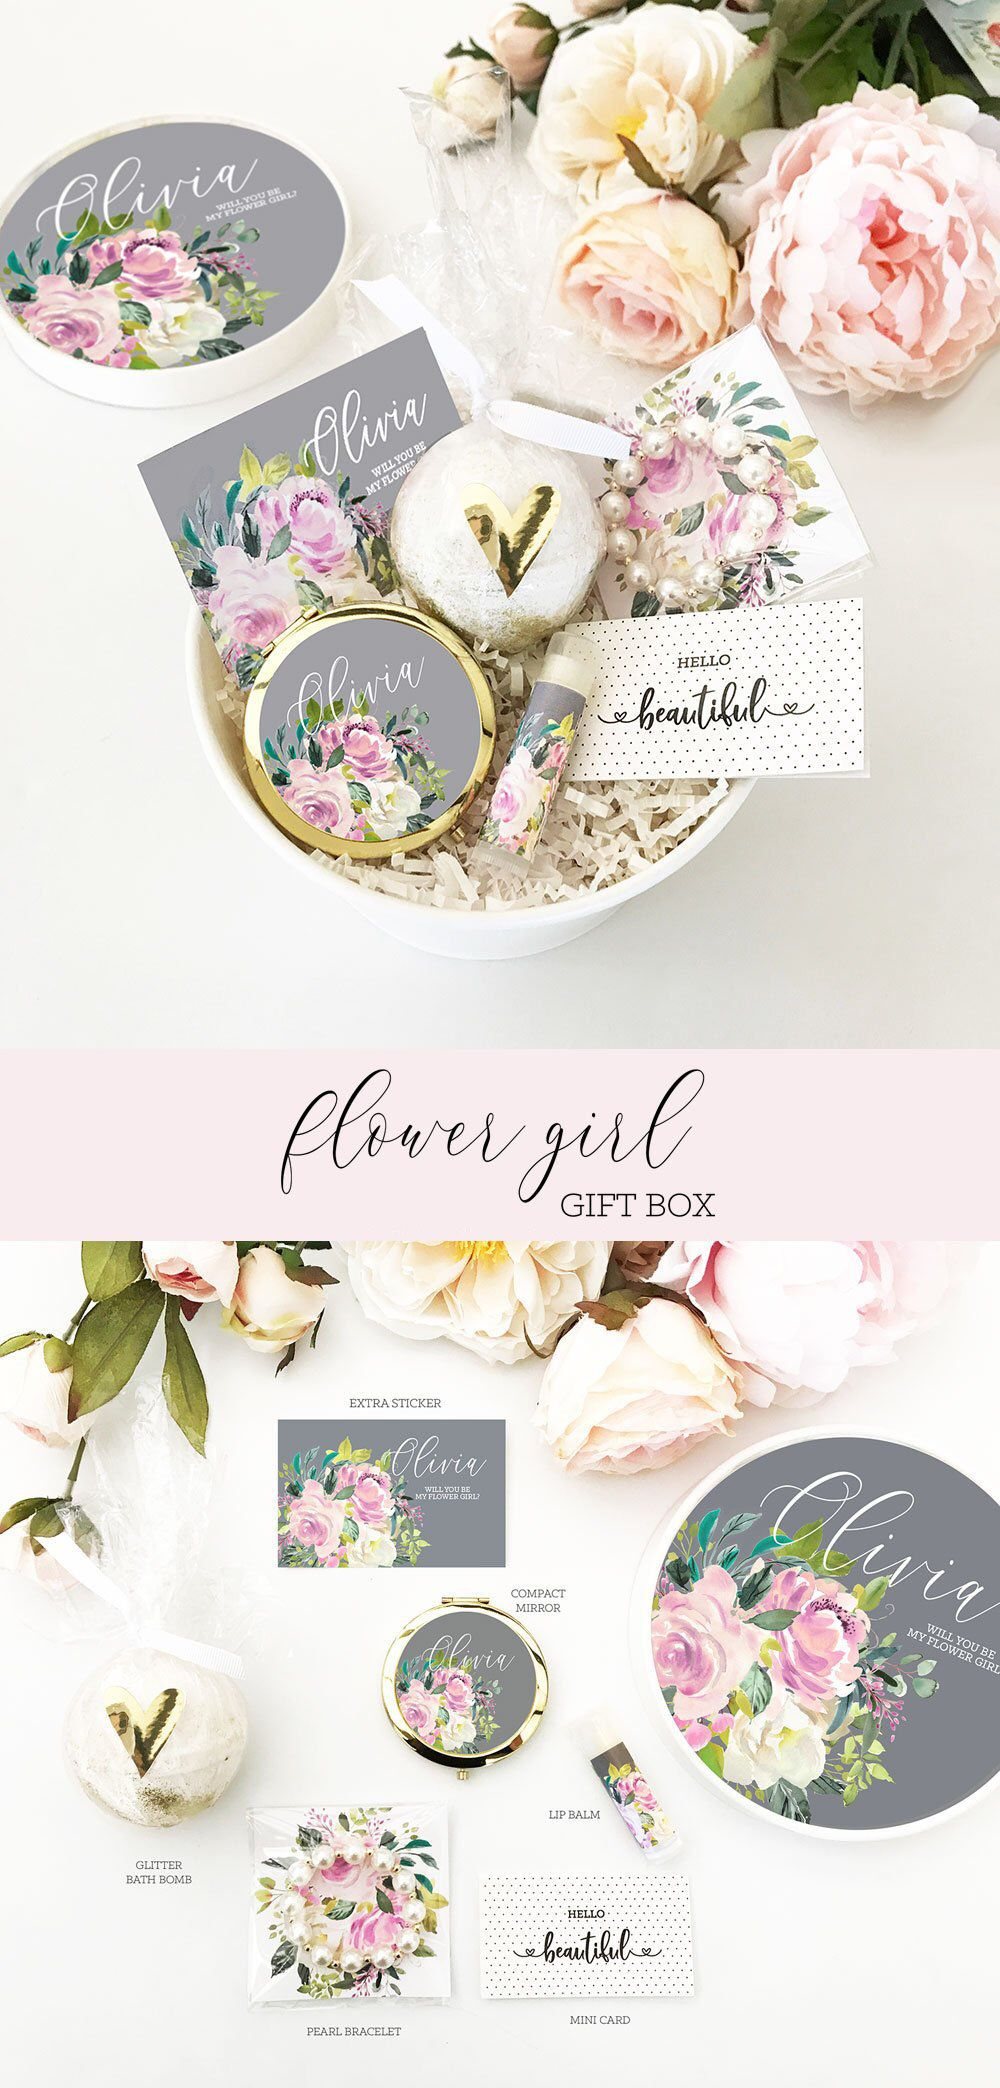 Flower girl proposal box flower girl gift box will you be